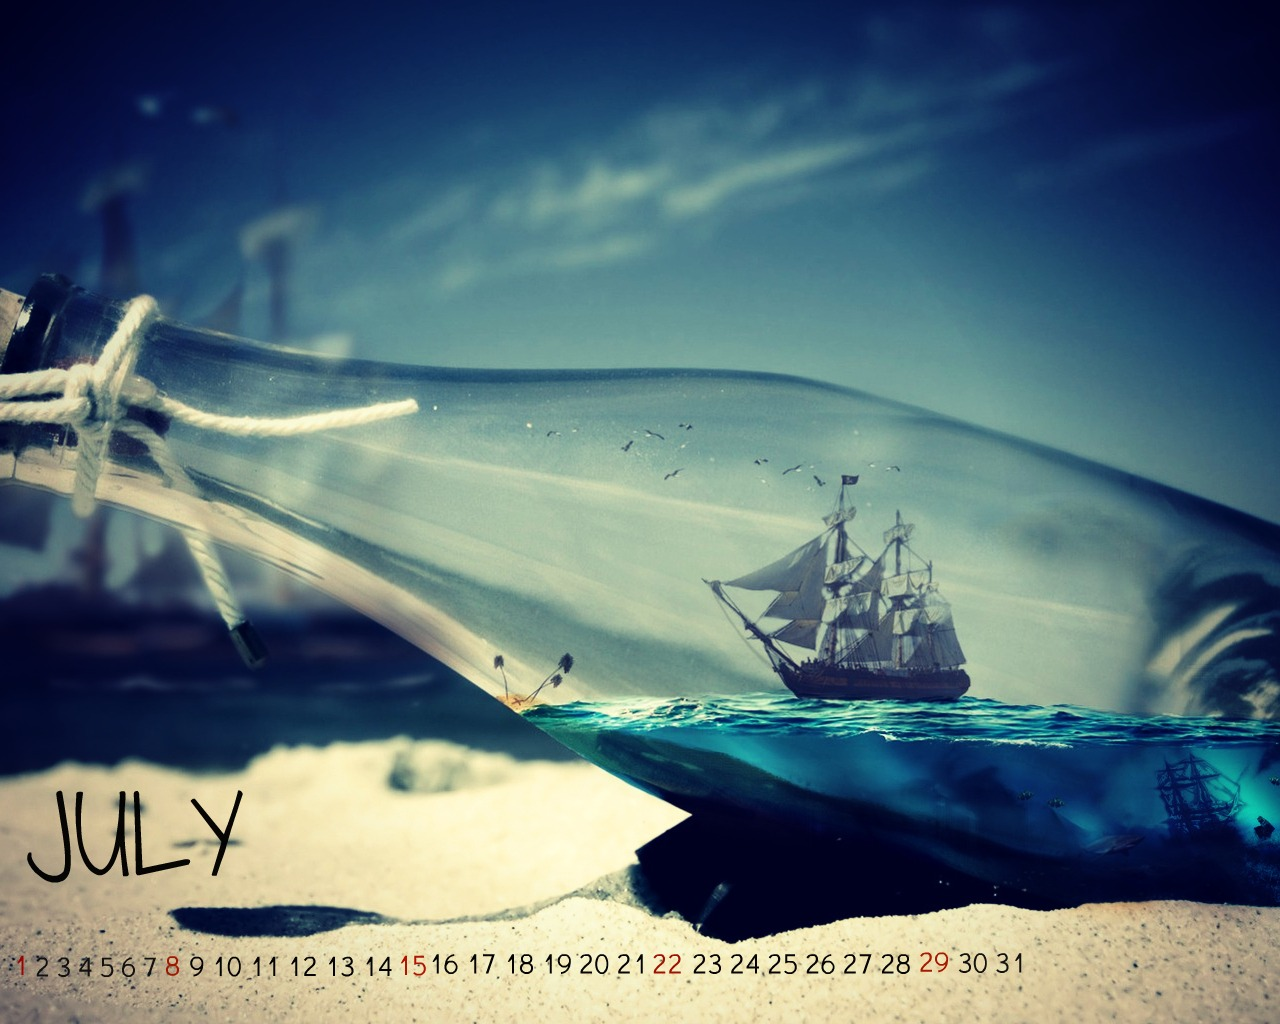 July 2nd 2012 Desktop Wallpaper Calendars July 2012 1280x1024